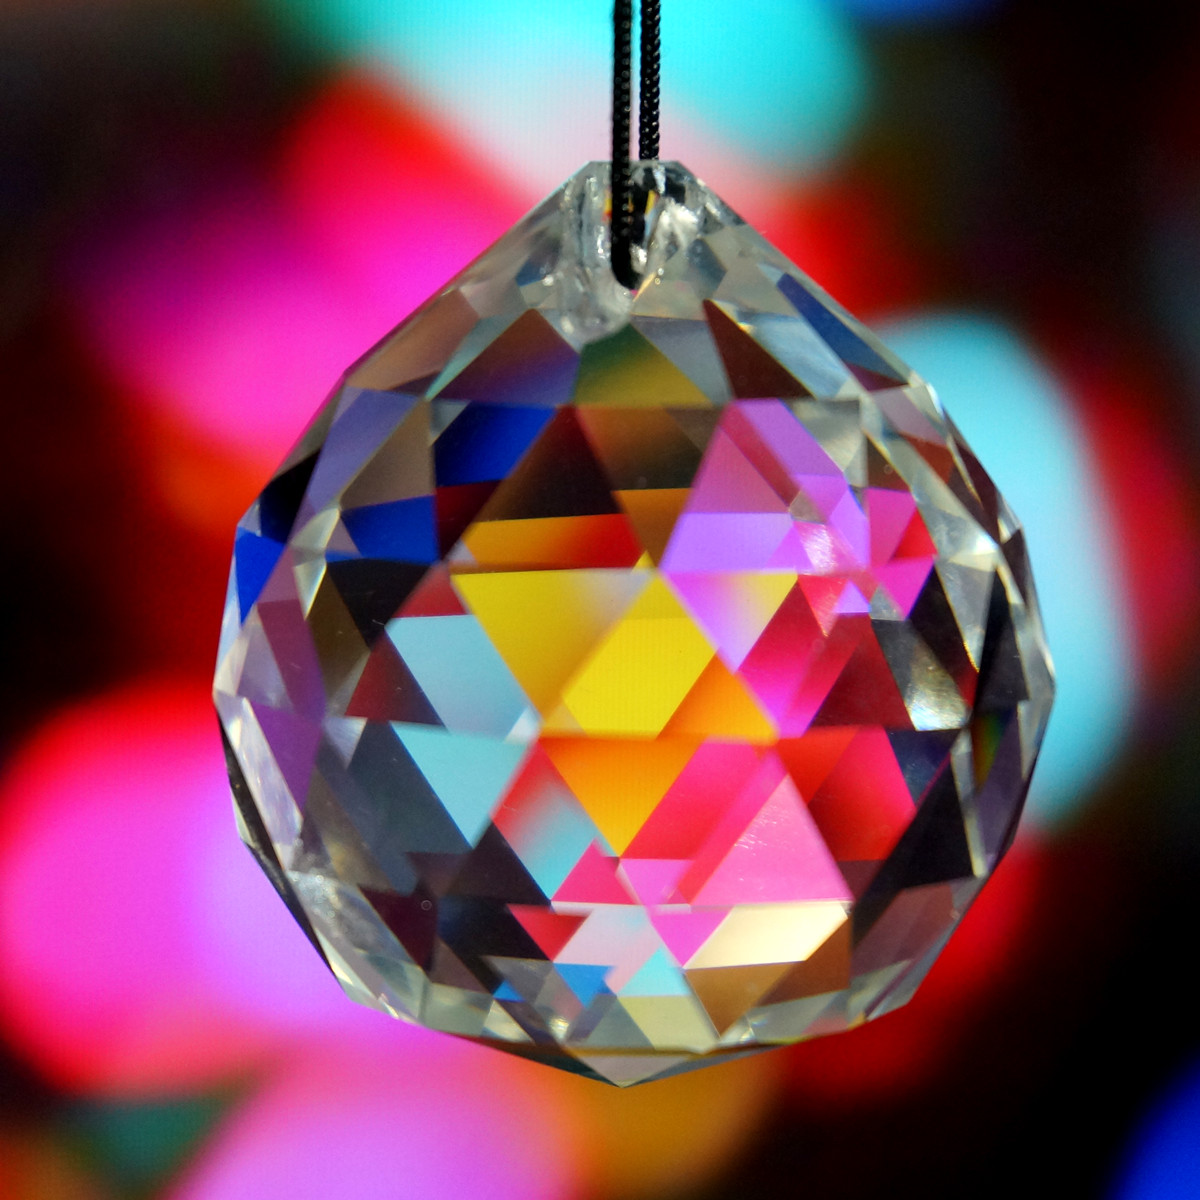 KSOL 10pcs Crystal Glass Lamp Chandelier Prisms Party Decor Hanging Drop Pendant 40mmKSOL 10pcs Crystal Glass Lamp Chandelier Prisms Party Decor Hanging Drop Pendant 40mm